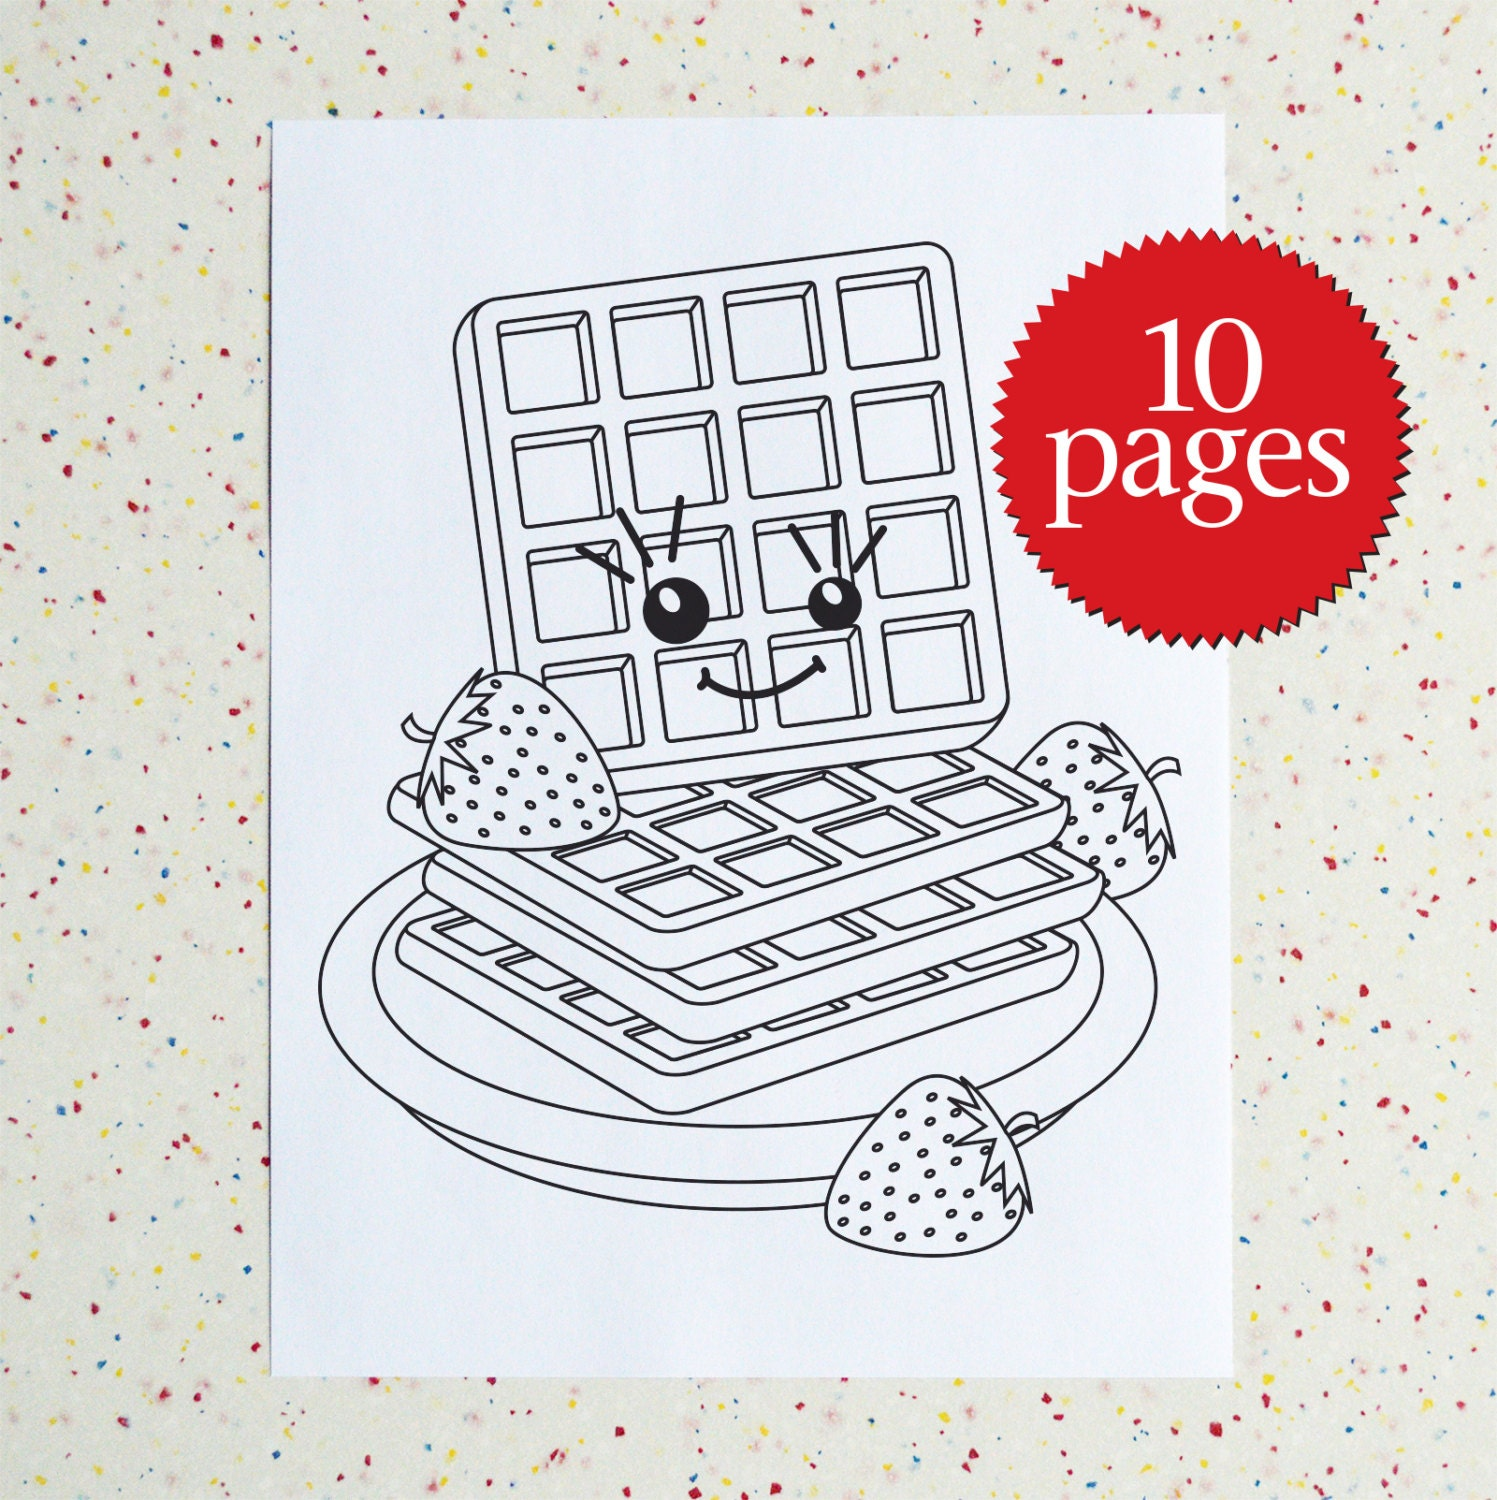 waffle coloring page - breakfast colouring pages downloadable pdf printable